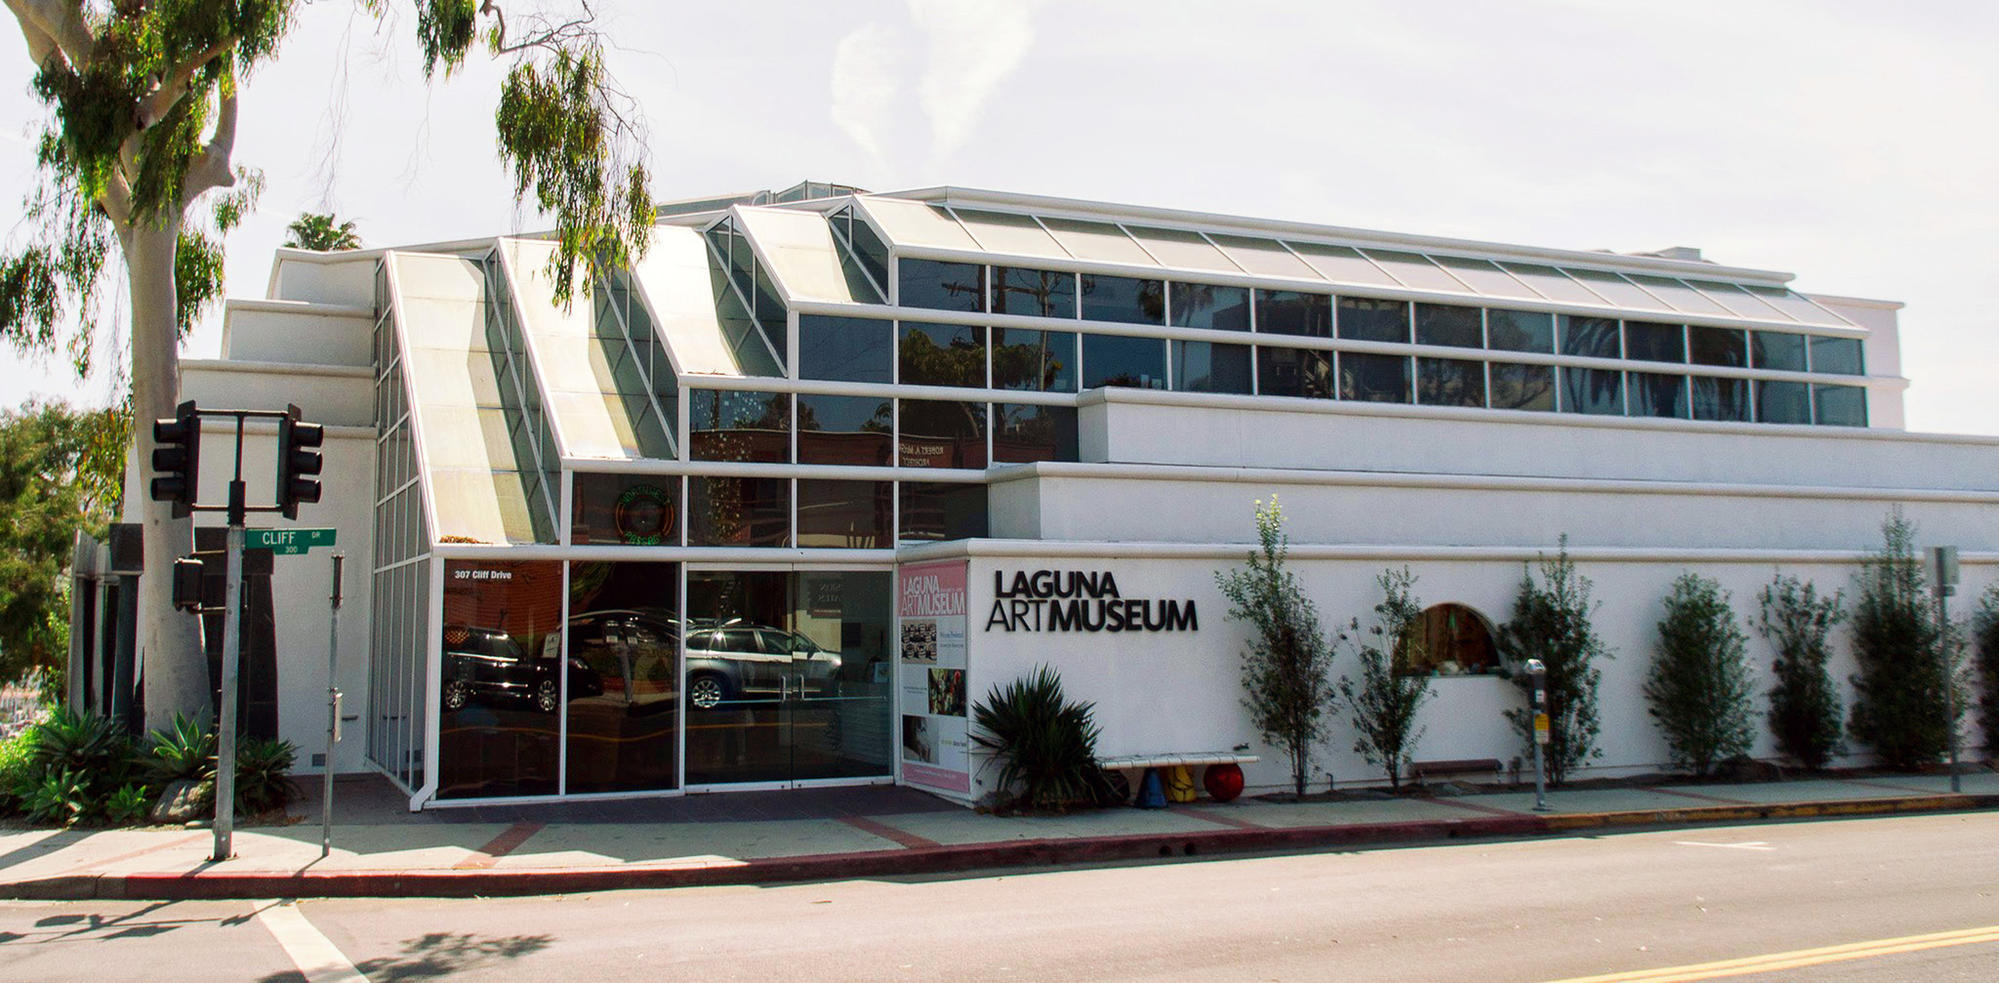 Laguna Art Museum, one of the oldest in the state, celebrates 100 years | The Los Angeles Times